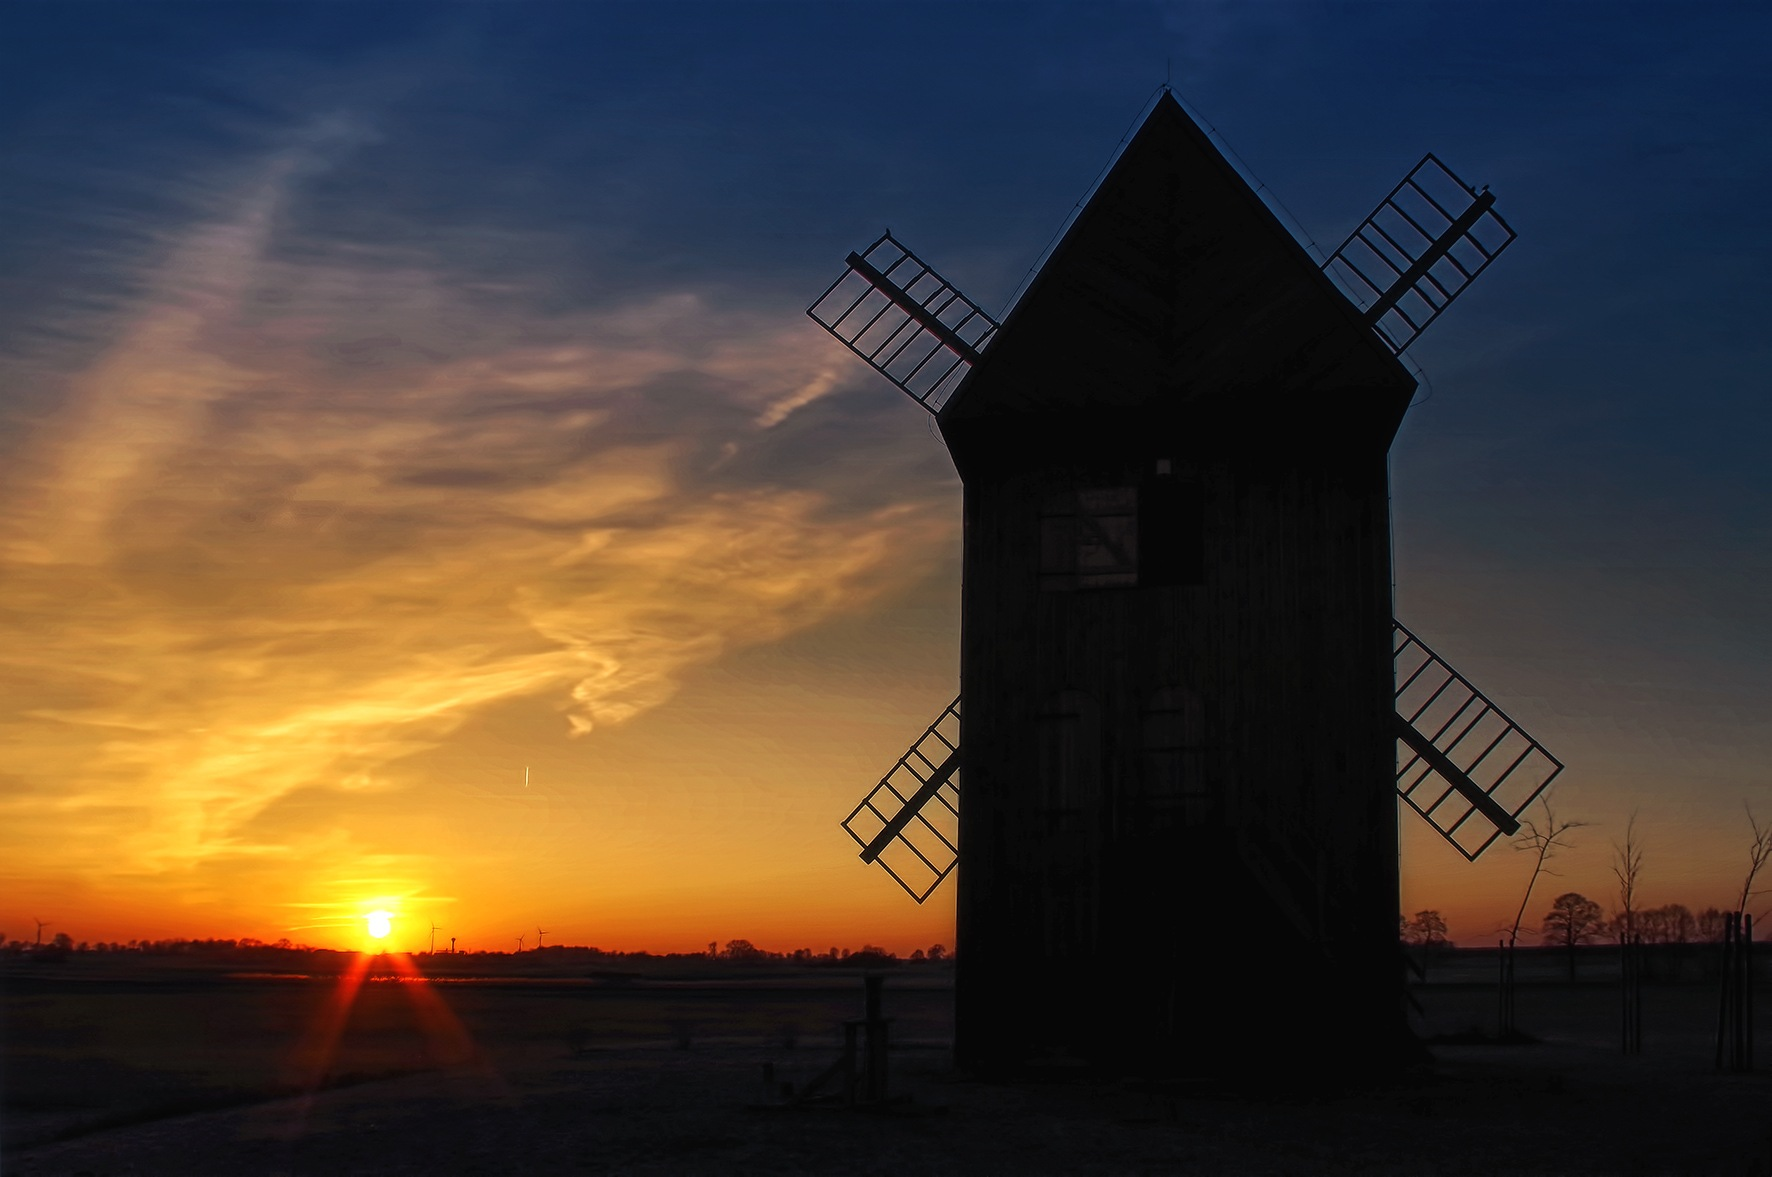 evening landscape with windmill by Tomasz Marciniak